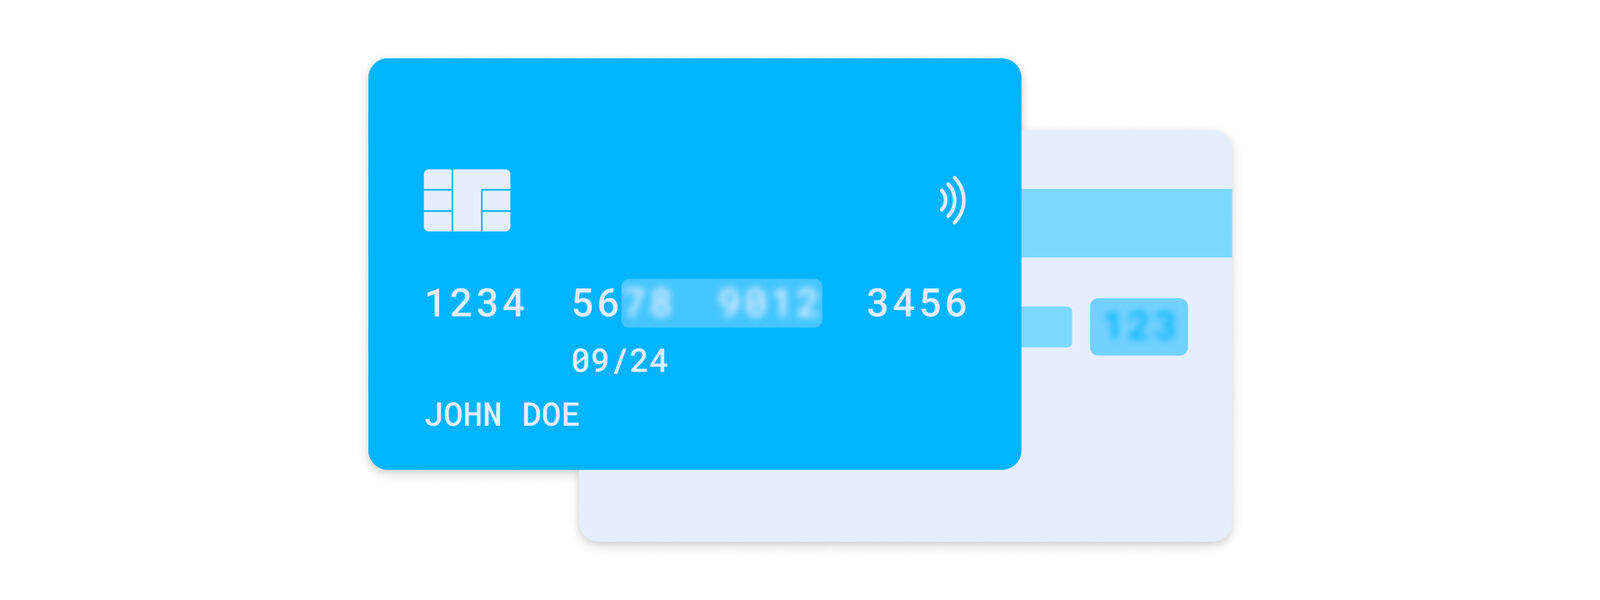 Leave the first 6 and last 4 digits of the card number visible (please cover the rest numbers). Cover the security code on the back side of your card (CVV)